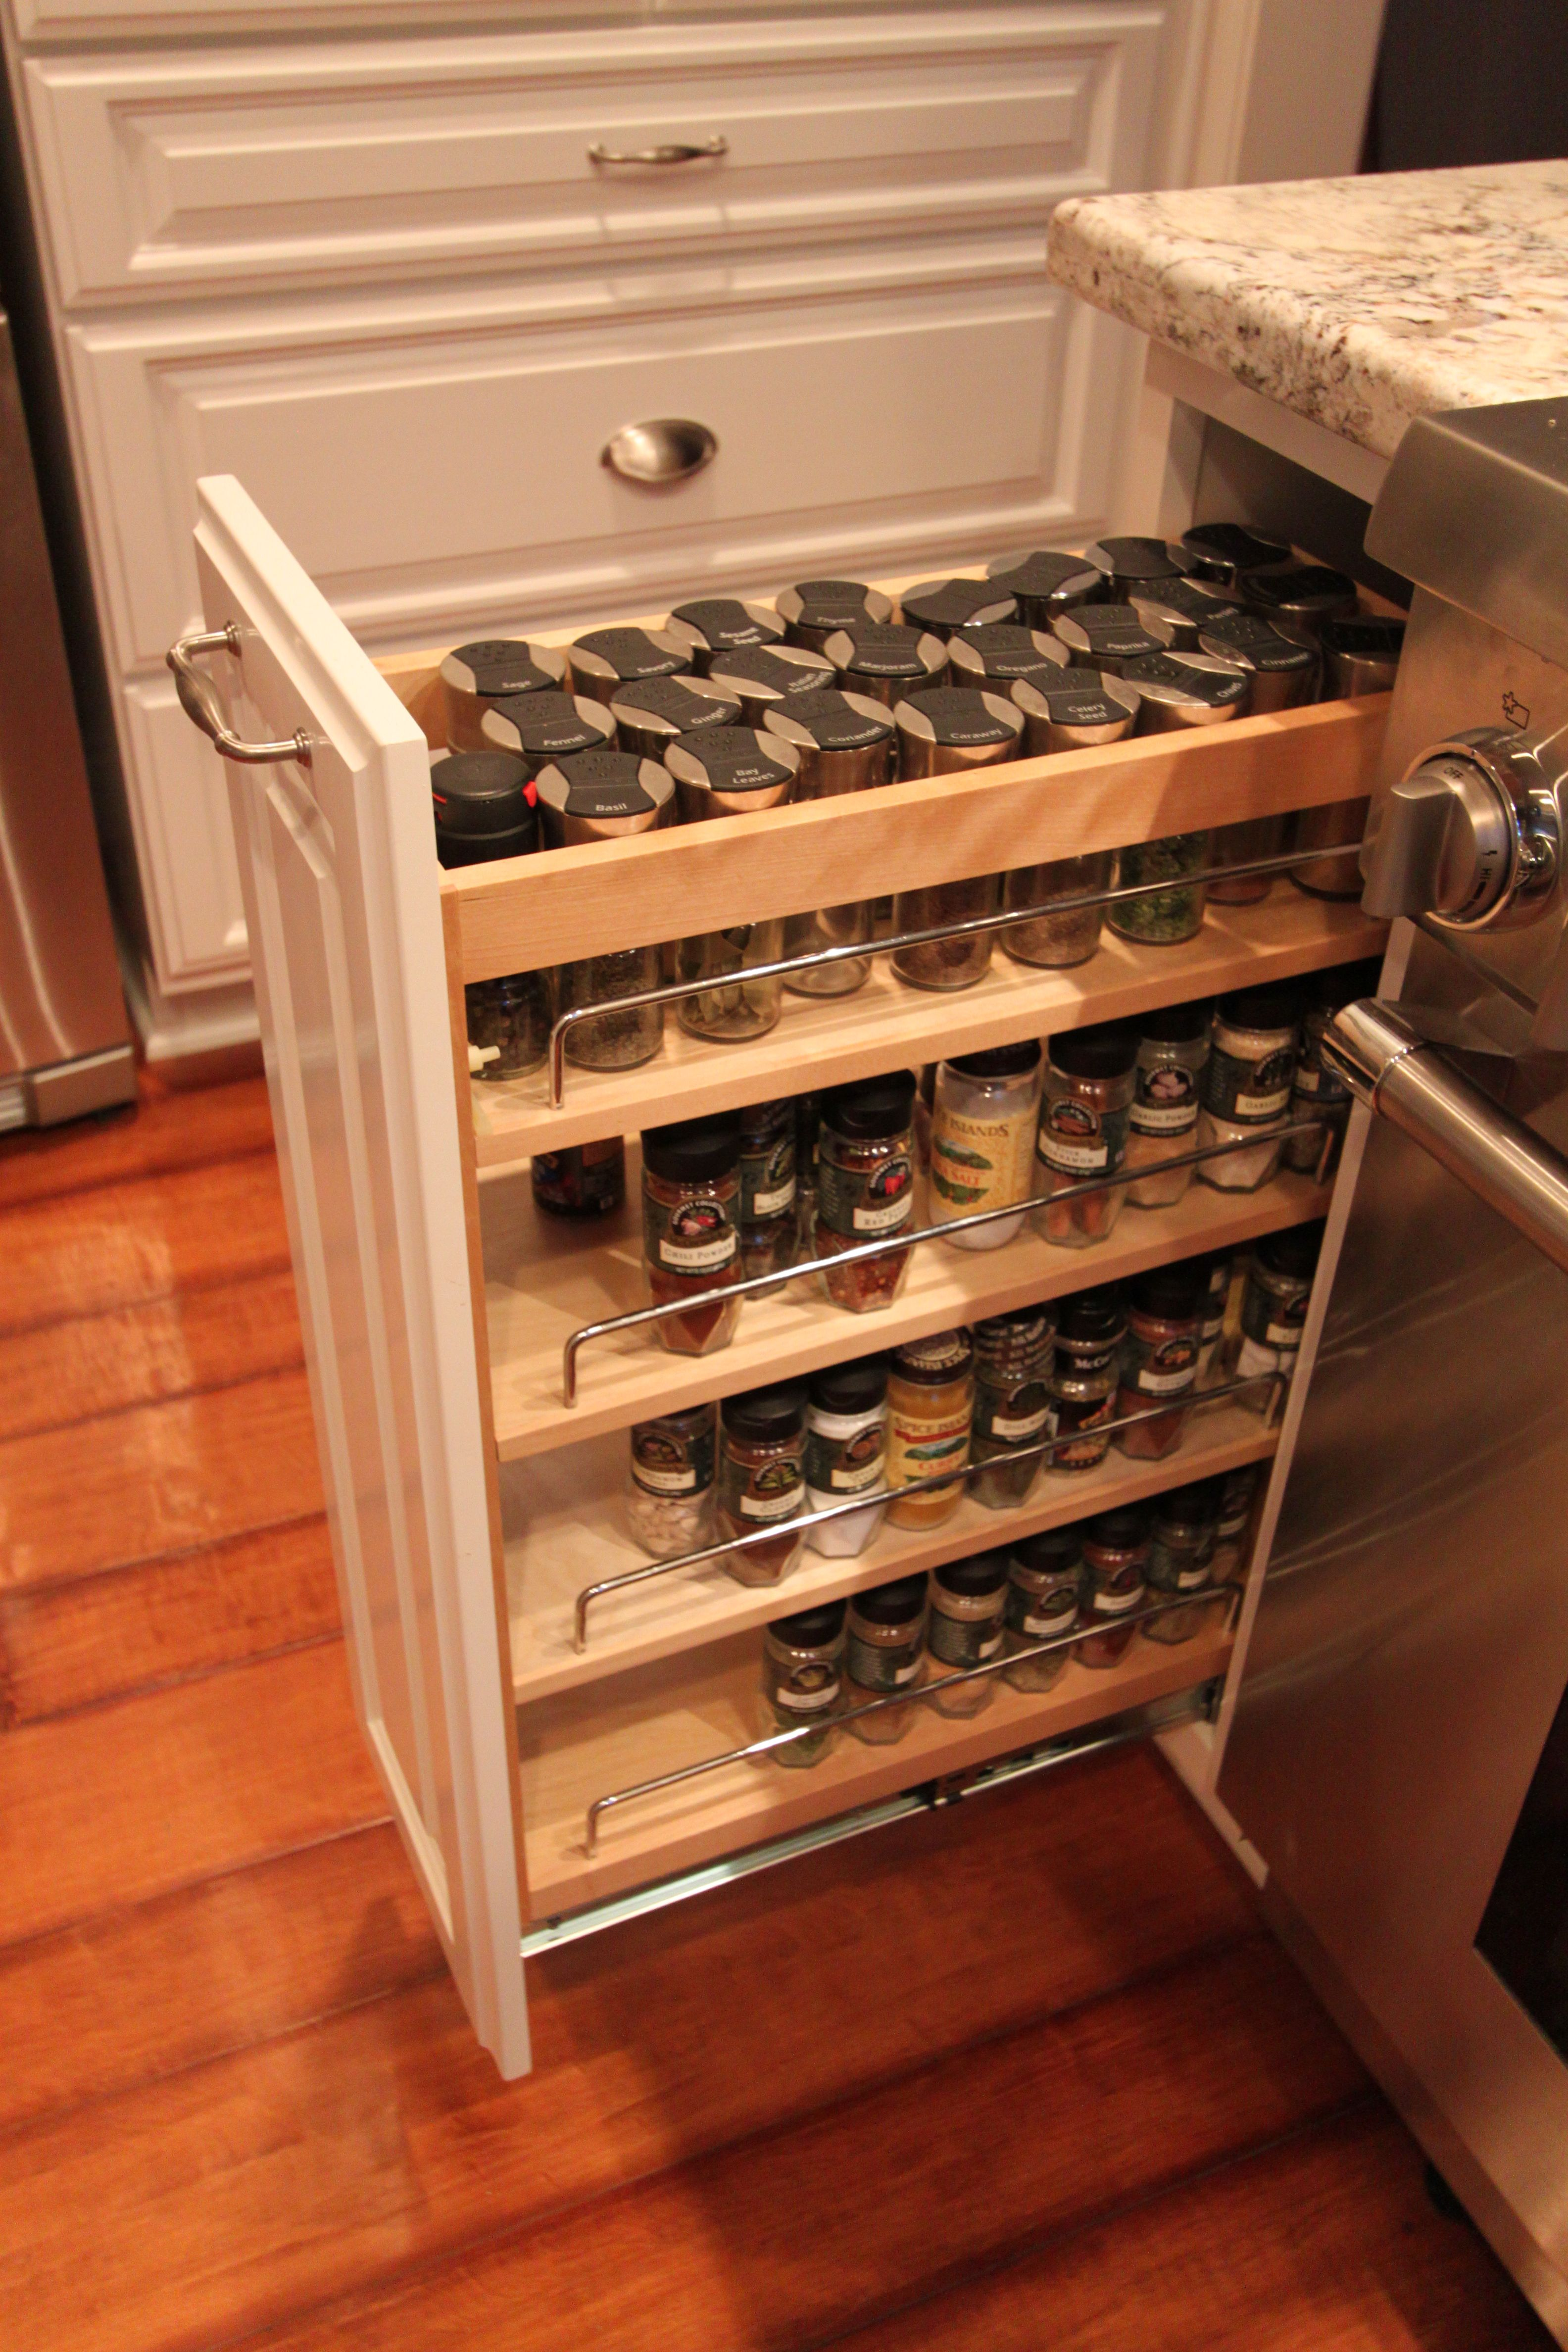 17 best images about kitchen solutions on pinterest spice racks wood insert and tel